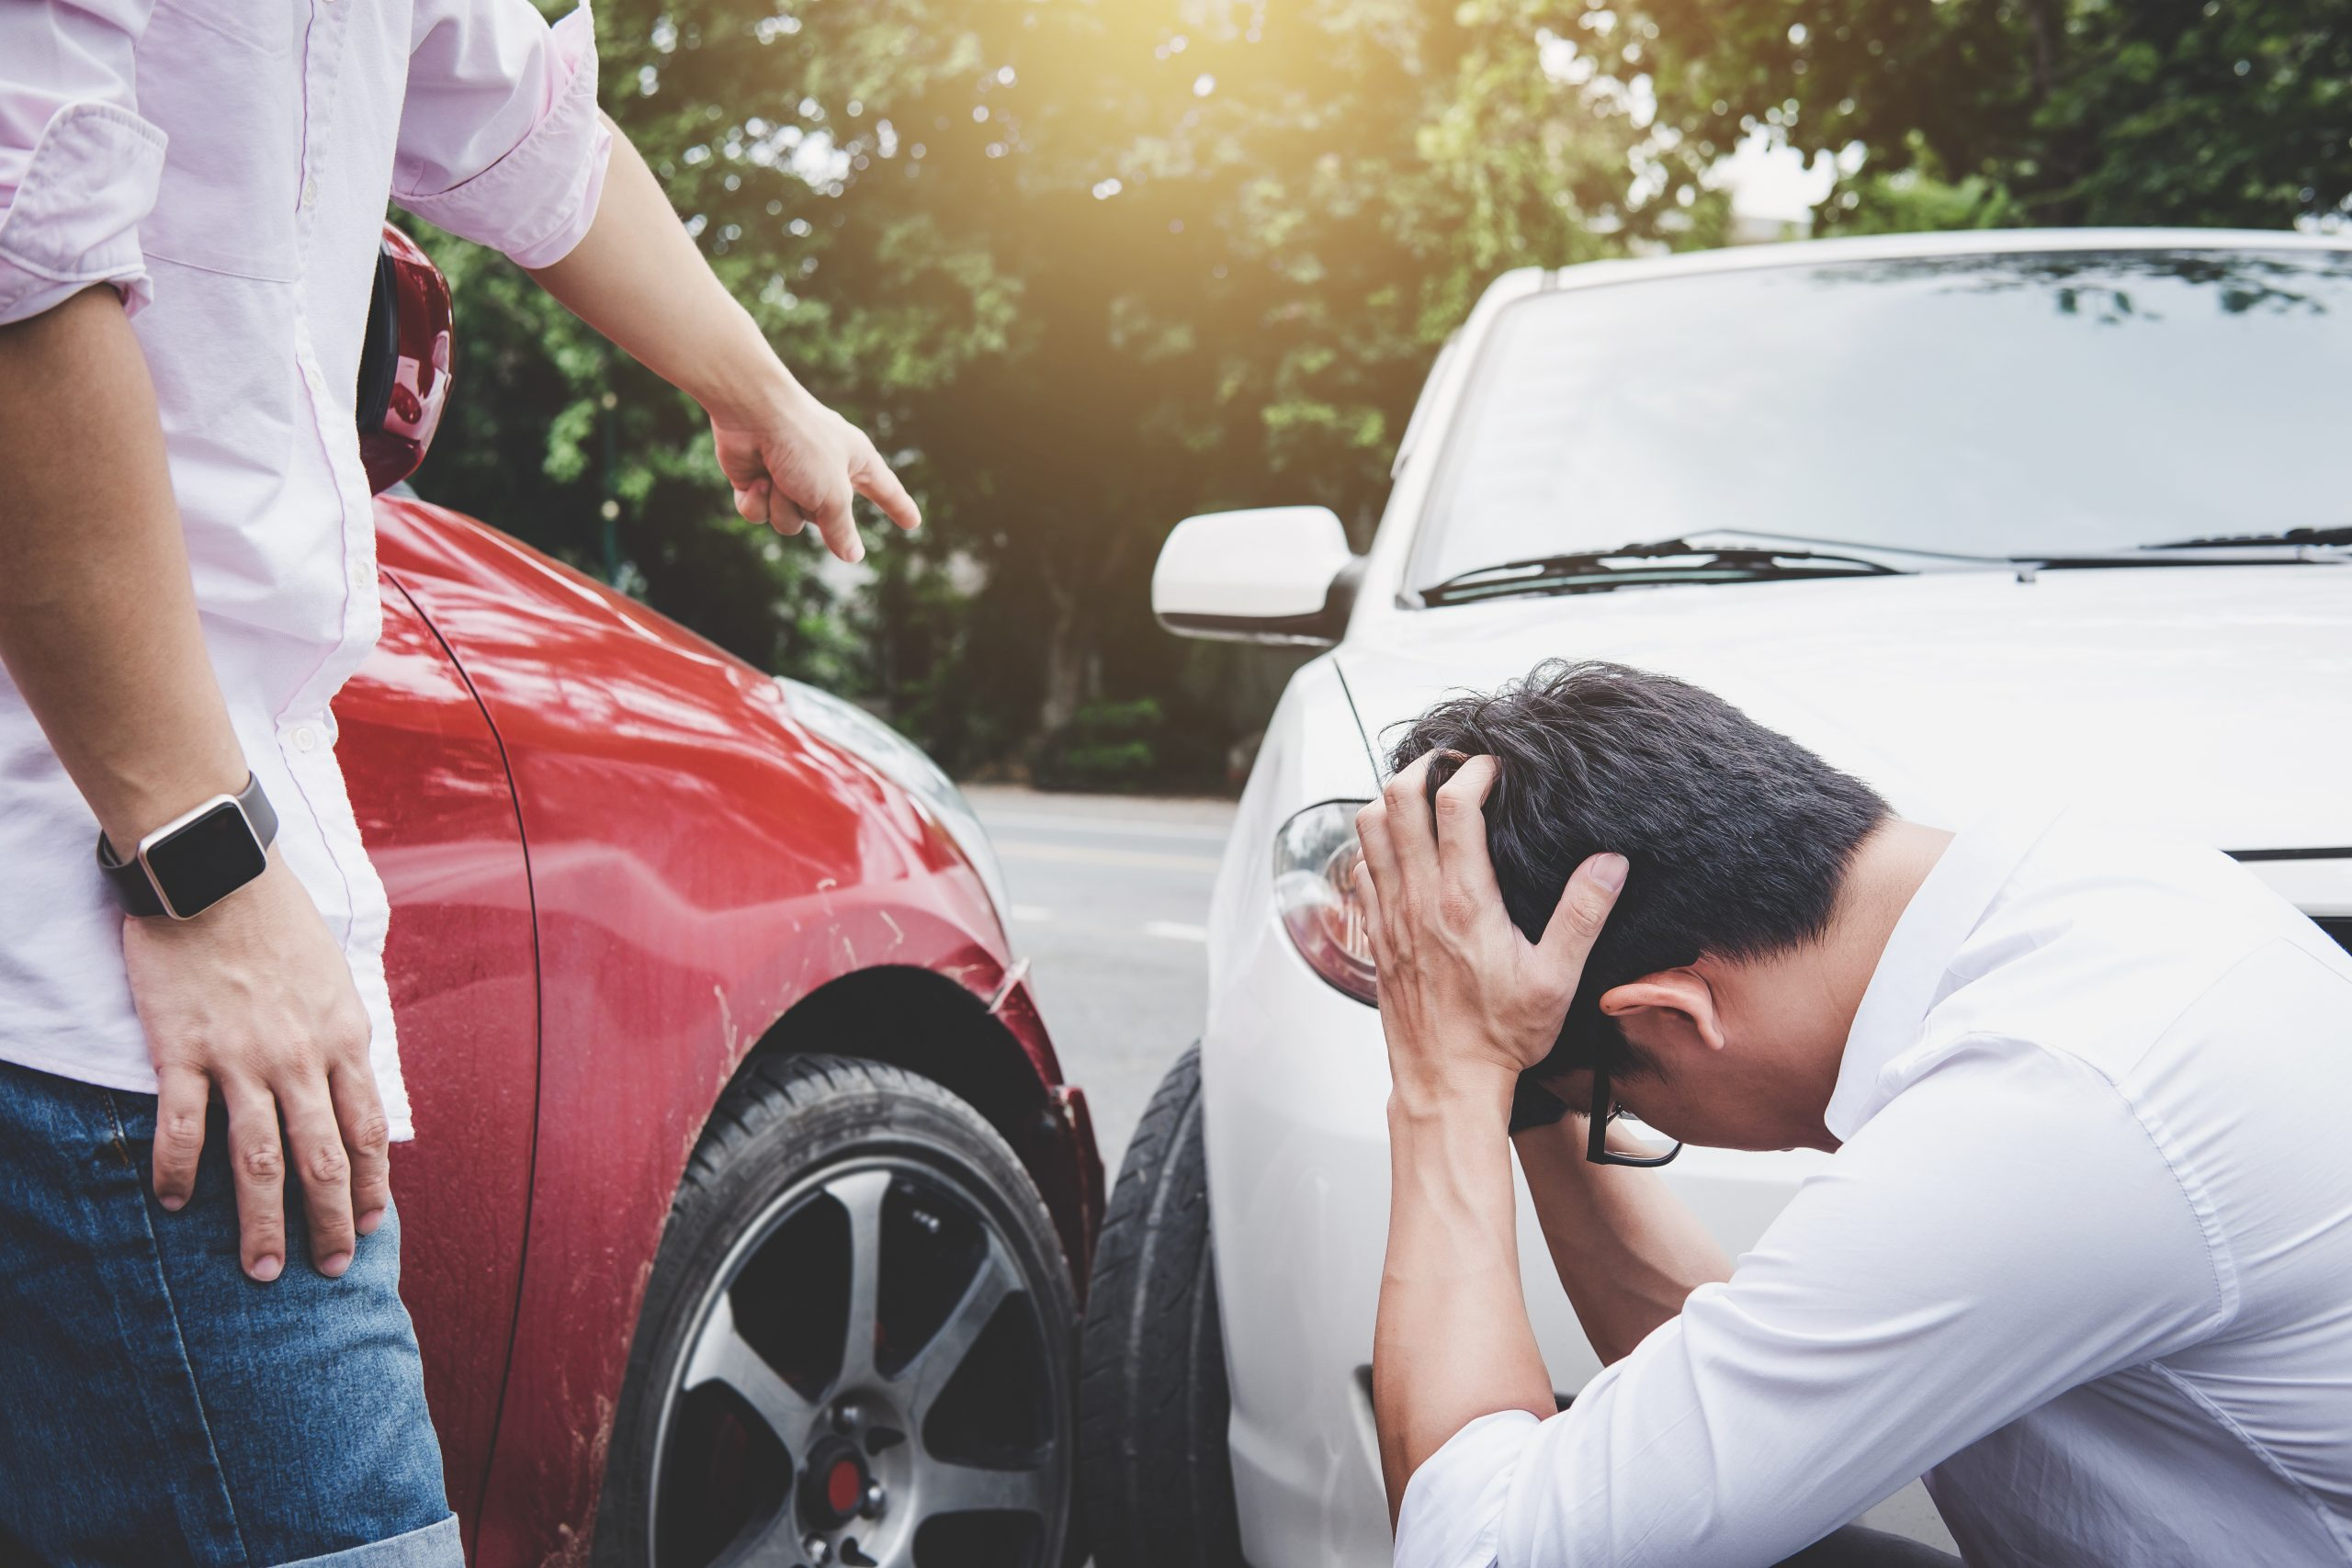 What happens when insurance doesn't fully cover an accident?